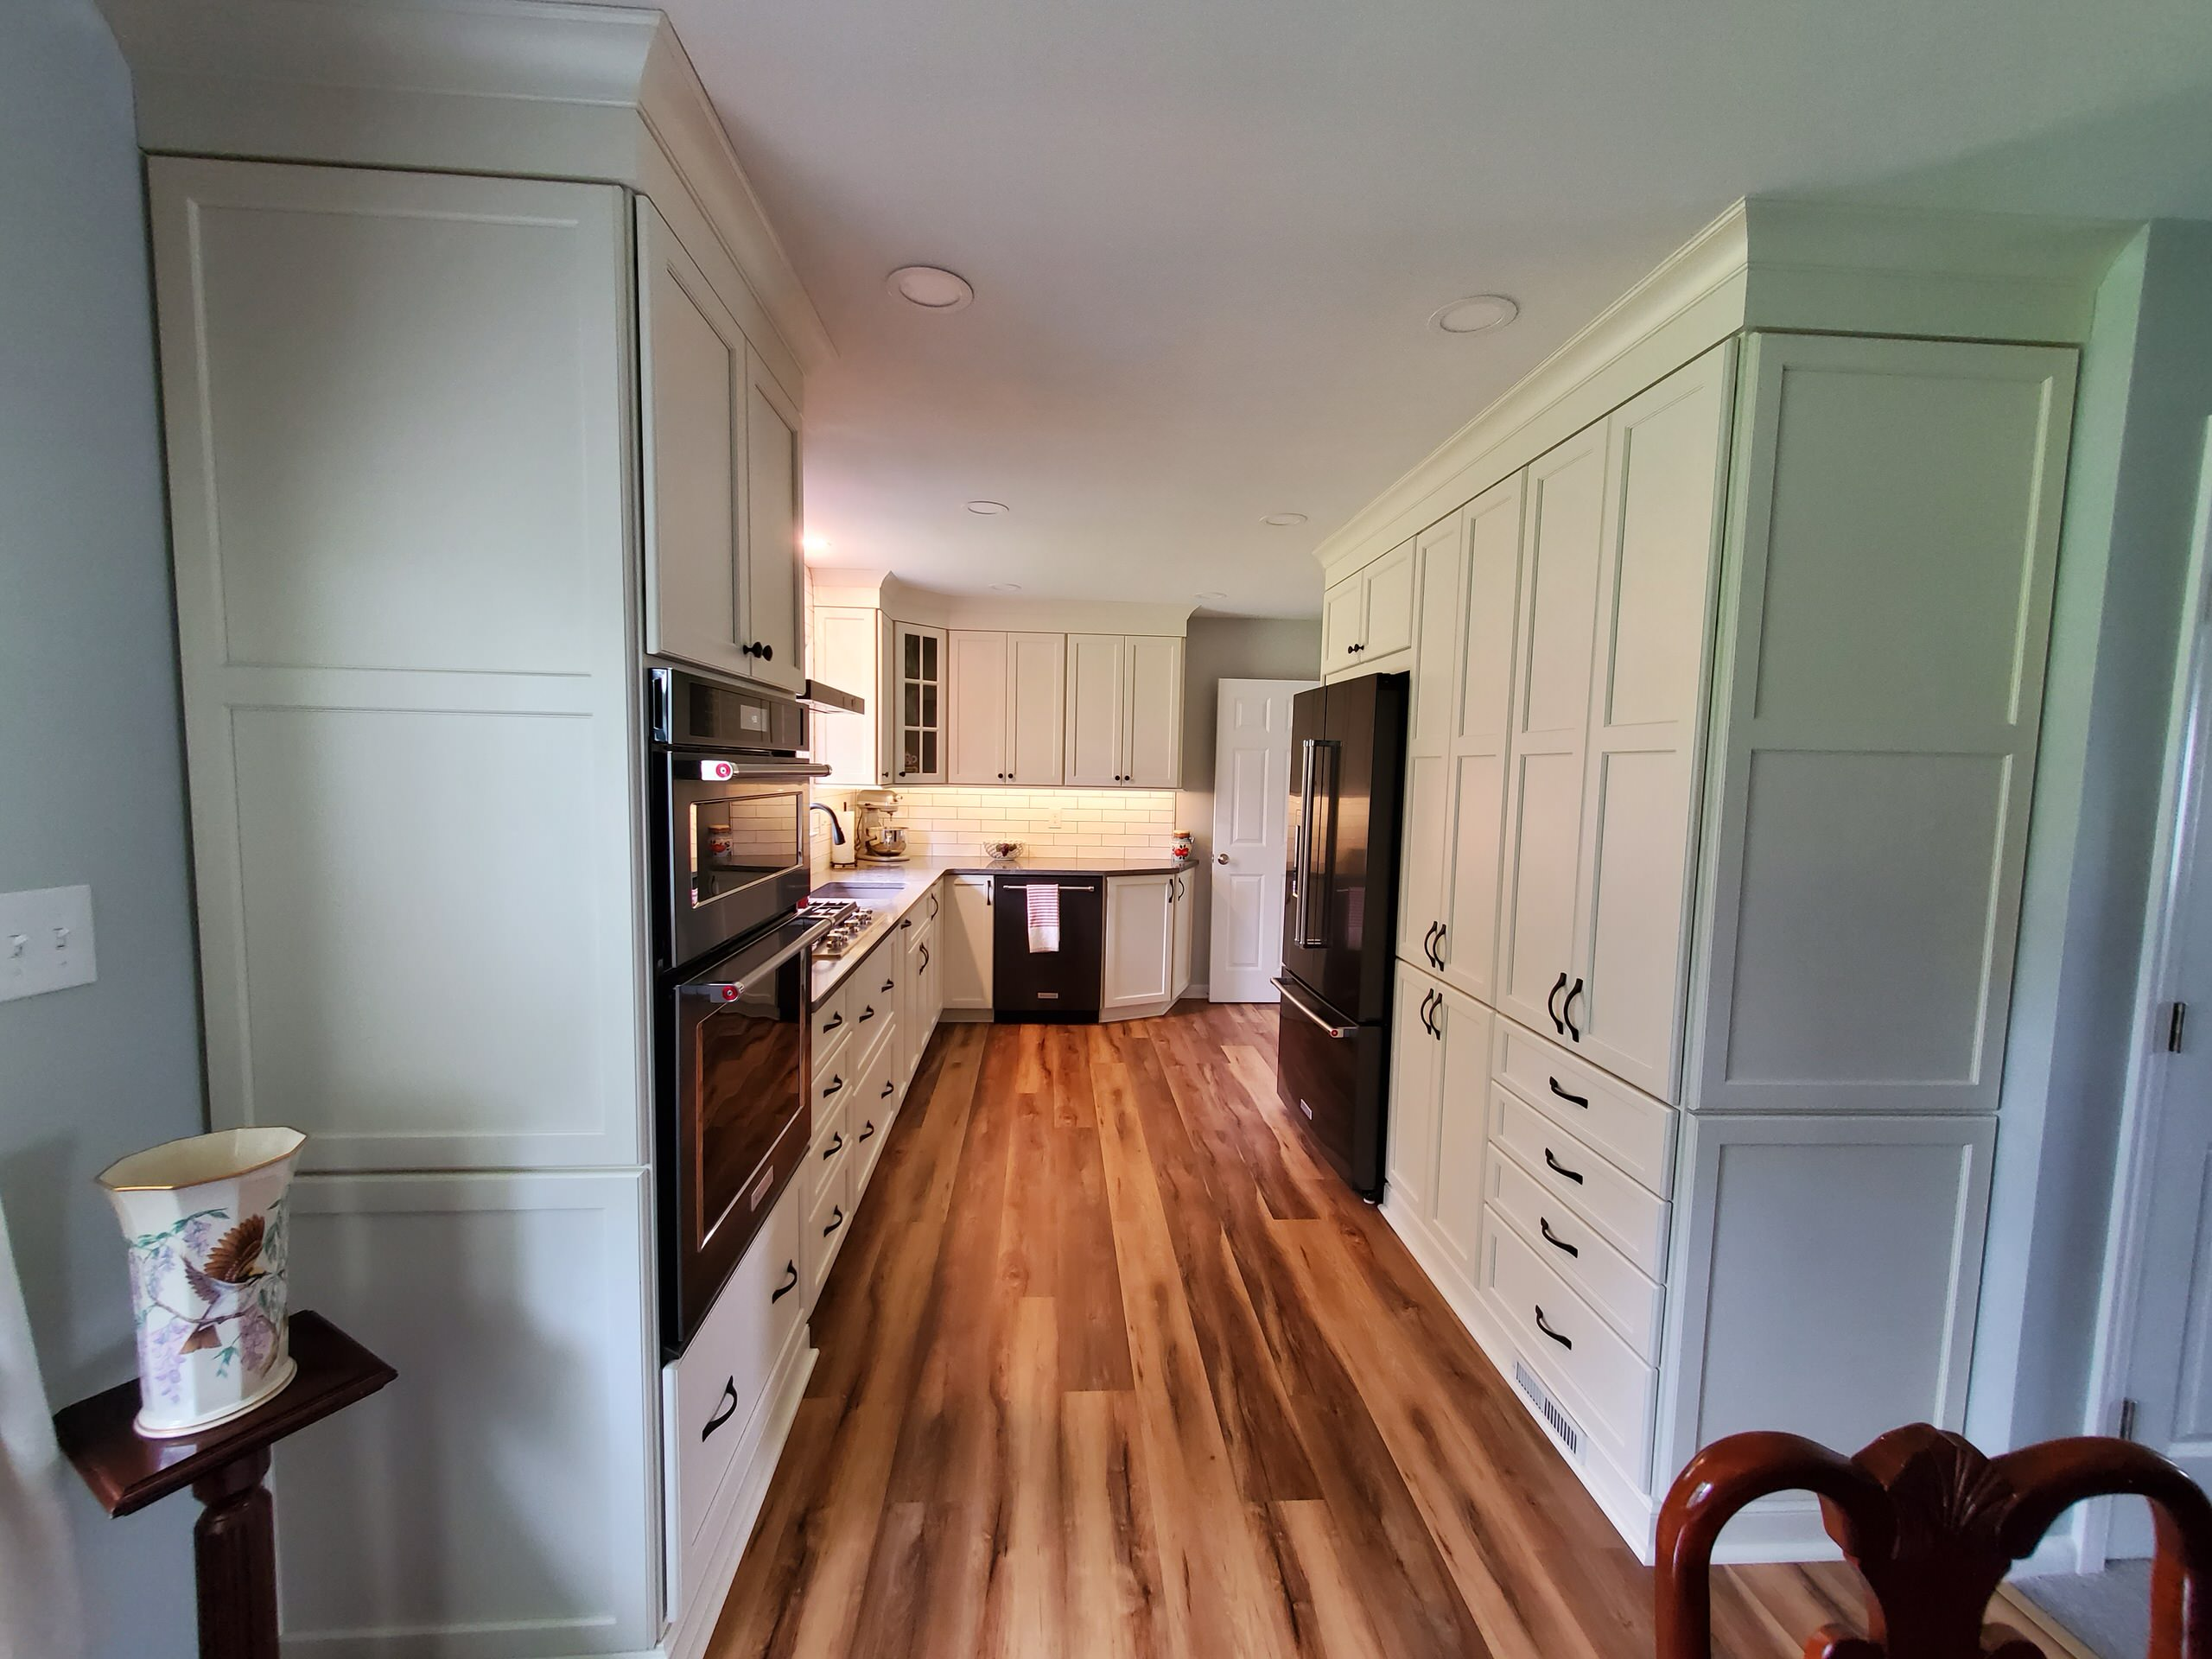 The Lalley Kitchen